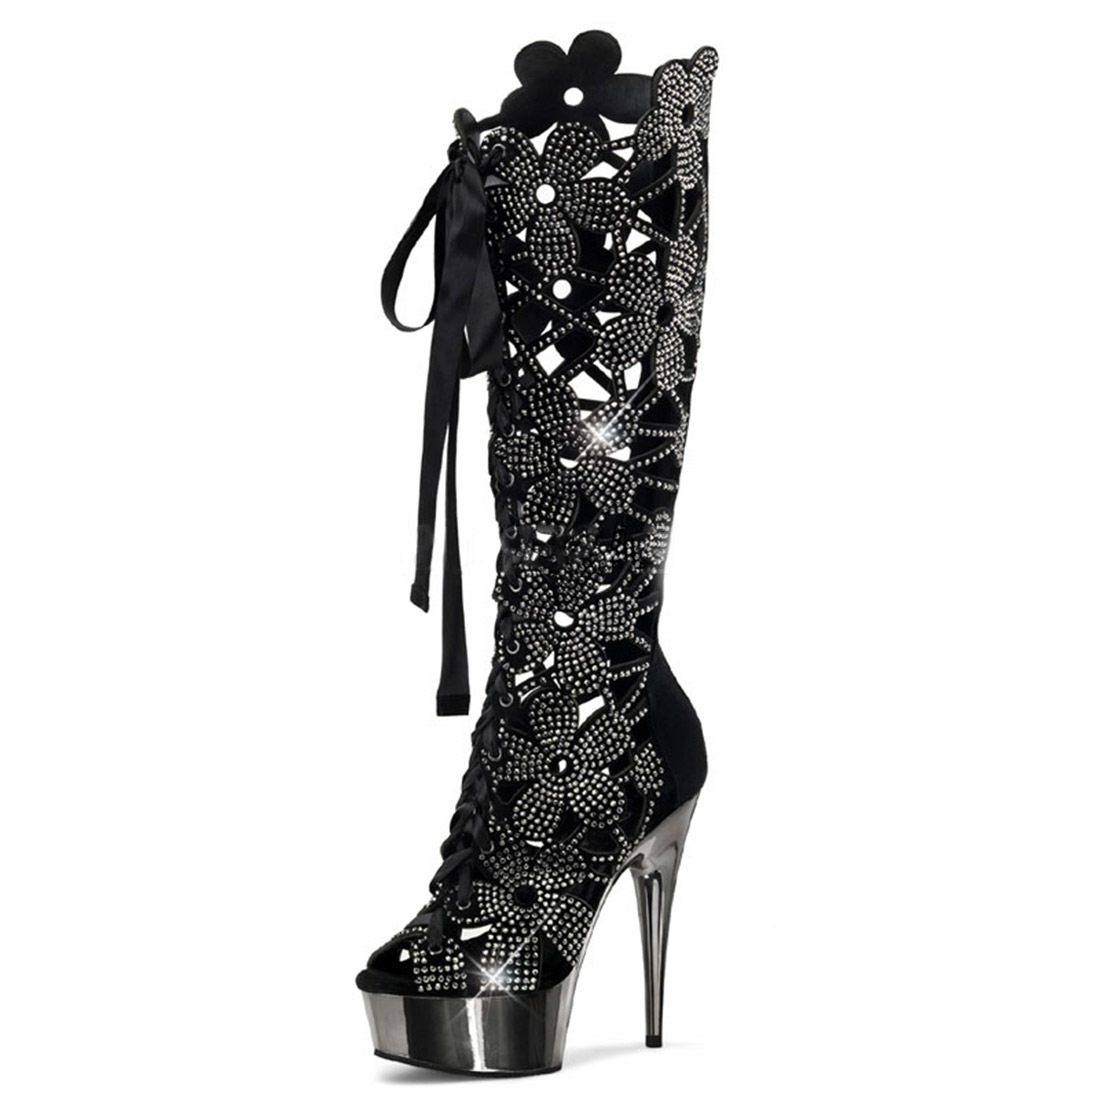 Black Velvet Suede Floral Cutout Knee High Platform Boots with 6 Inch Heels